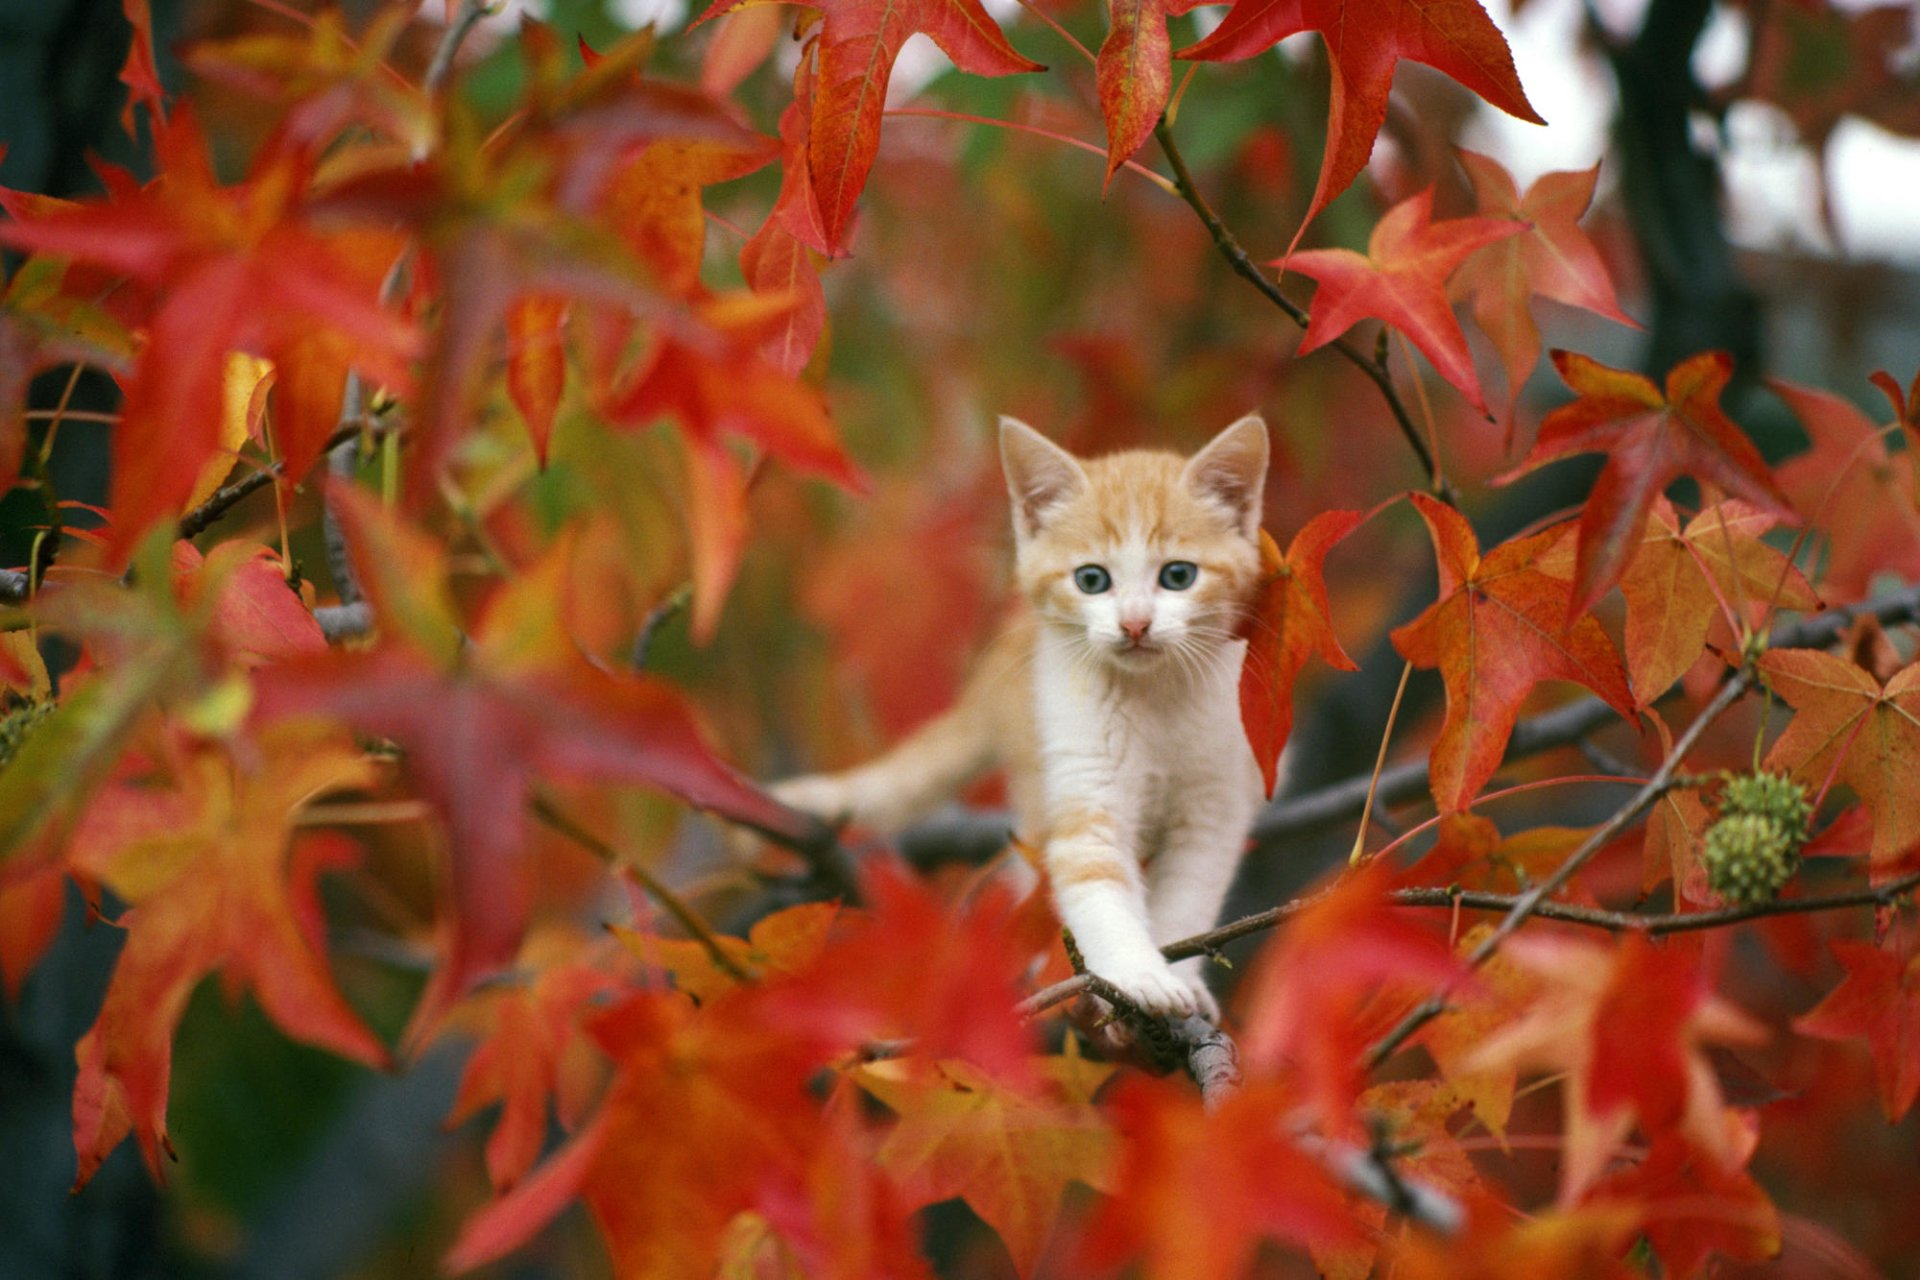 Animaux - Chat  Automne Feuille Kitten Baby Animal Fond d'écran